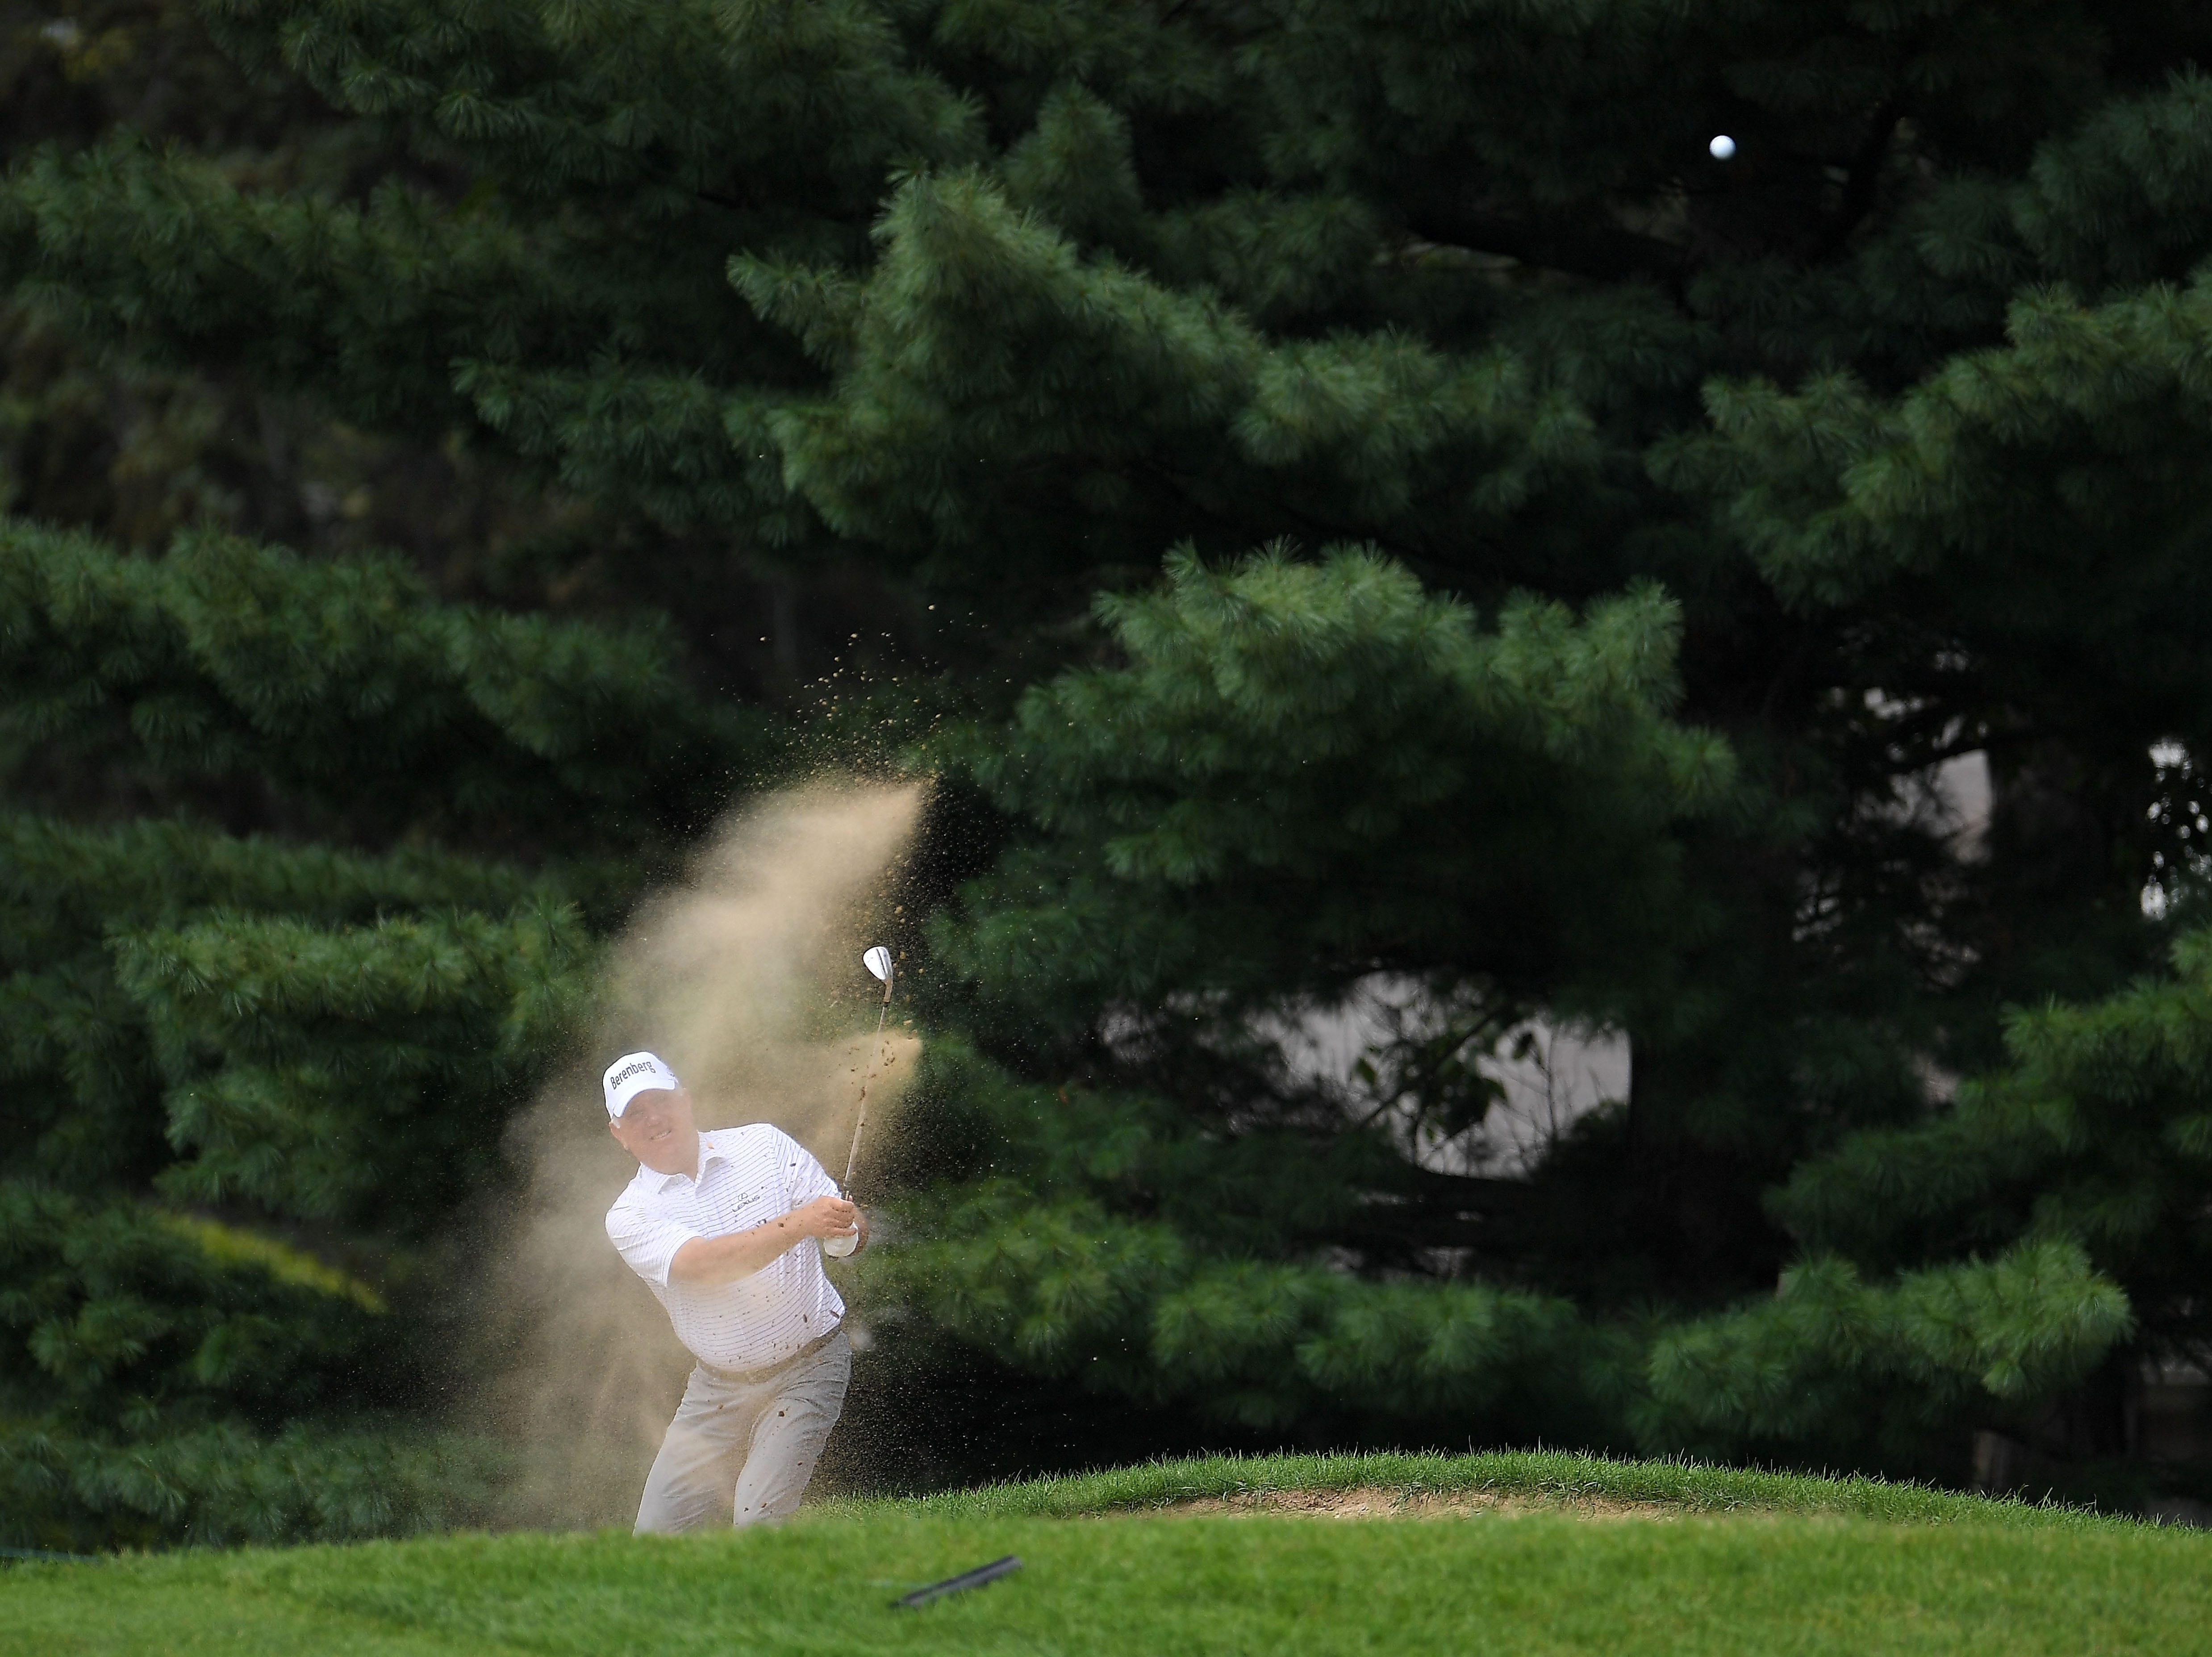 Mark O'Meara hits his third shot from a fairway bunker on the first hole.